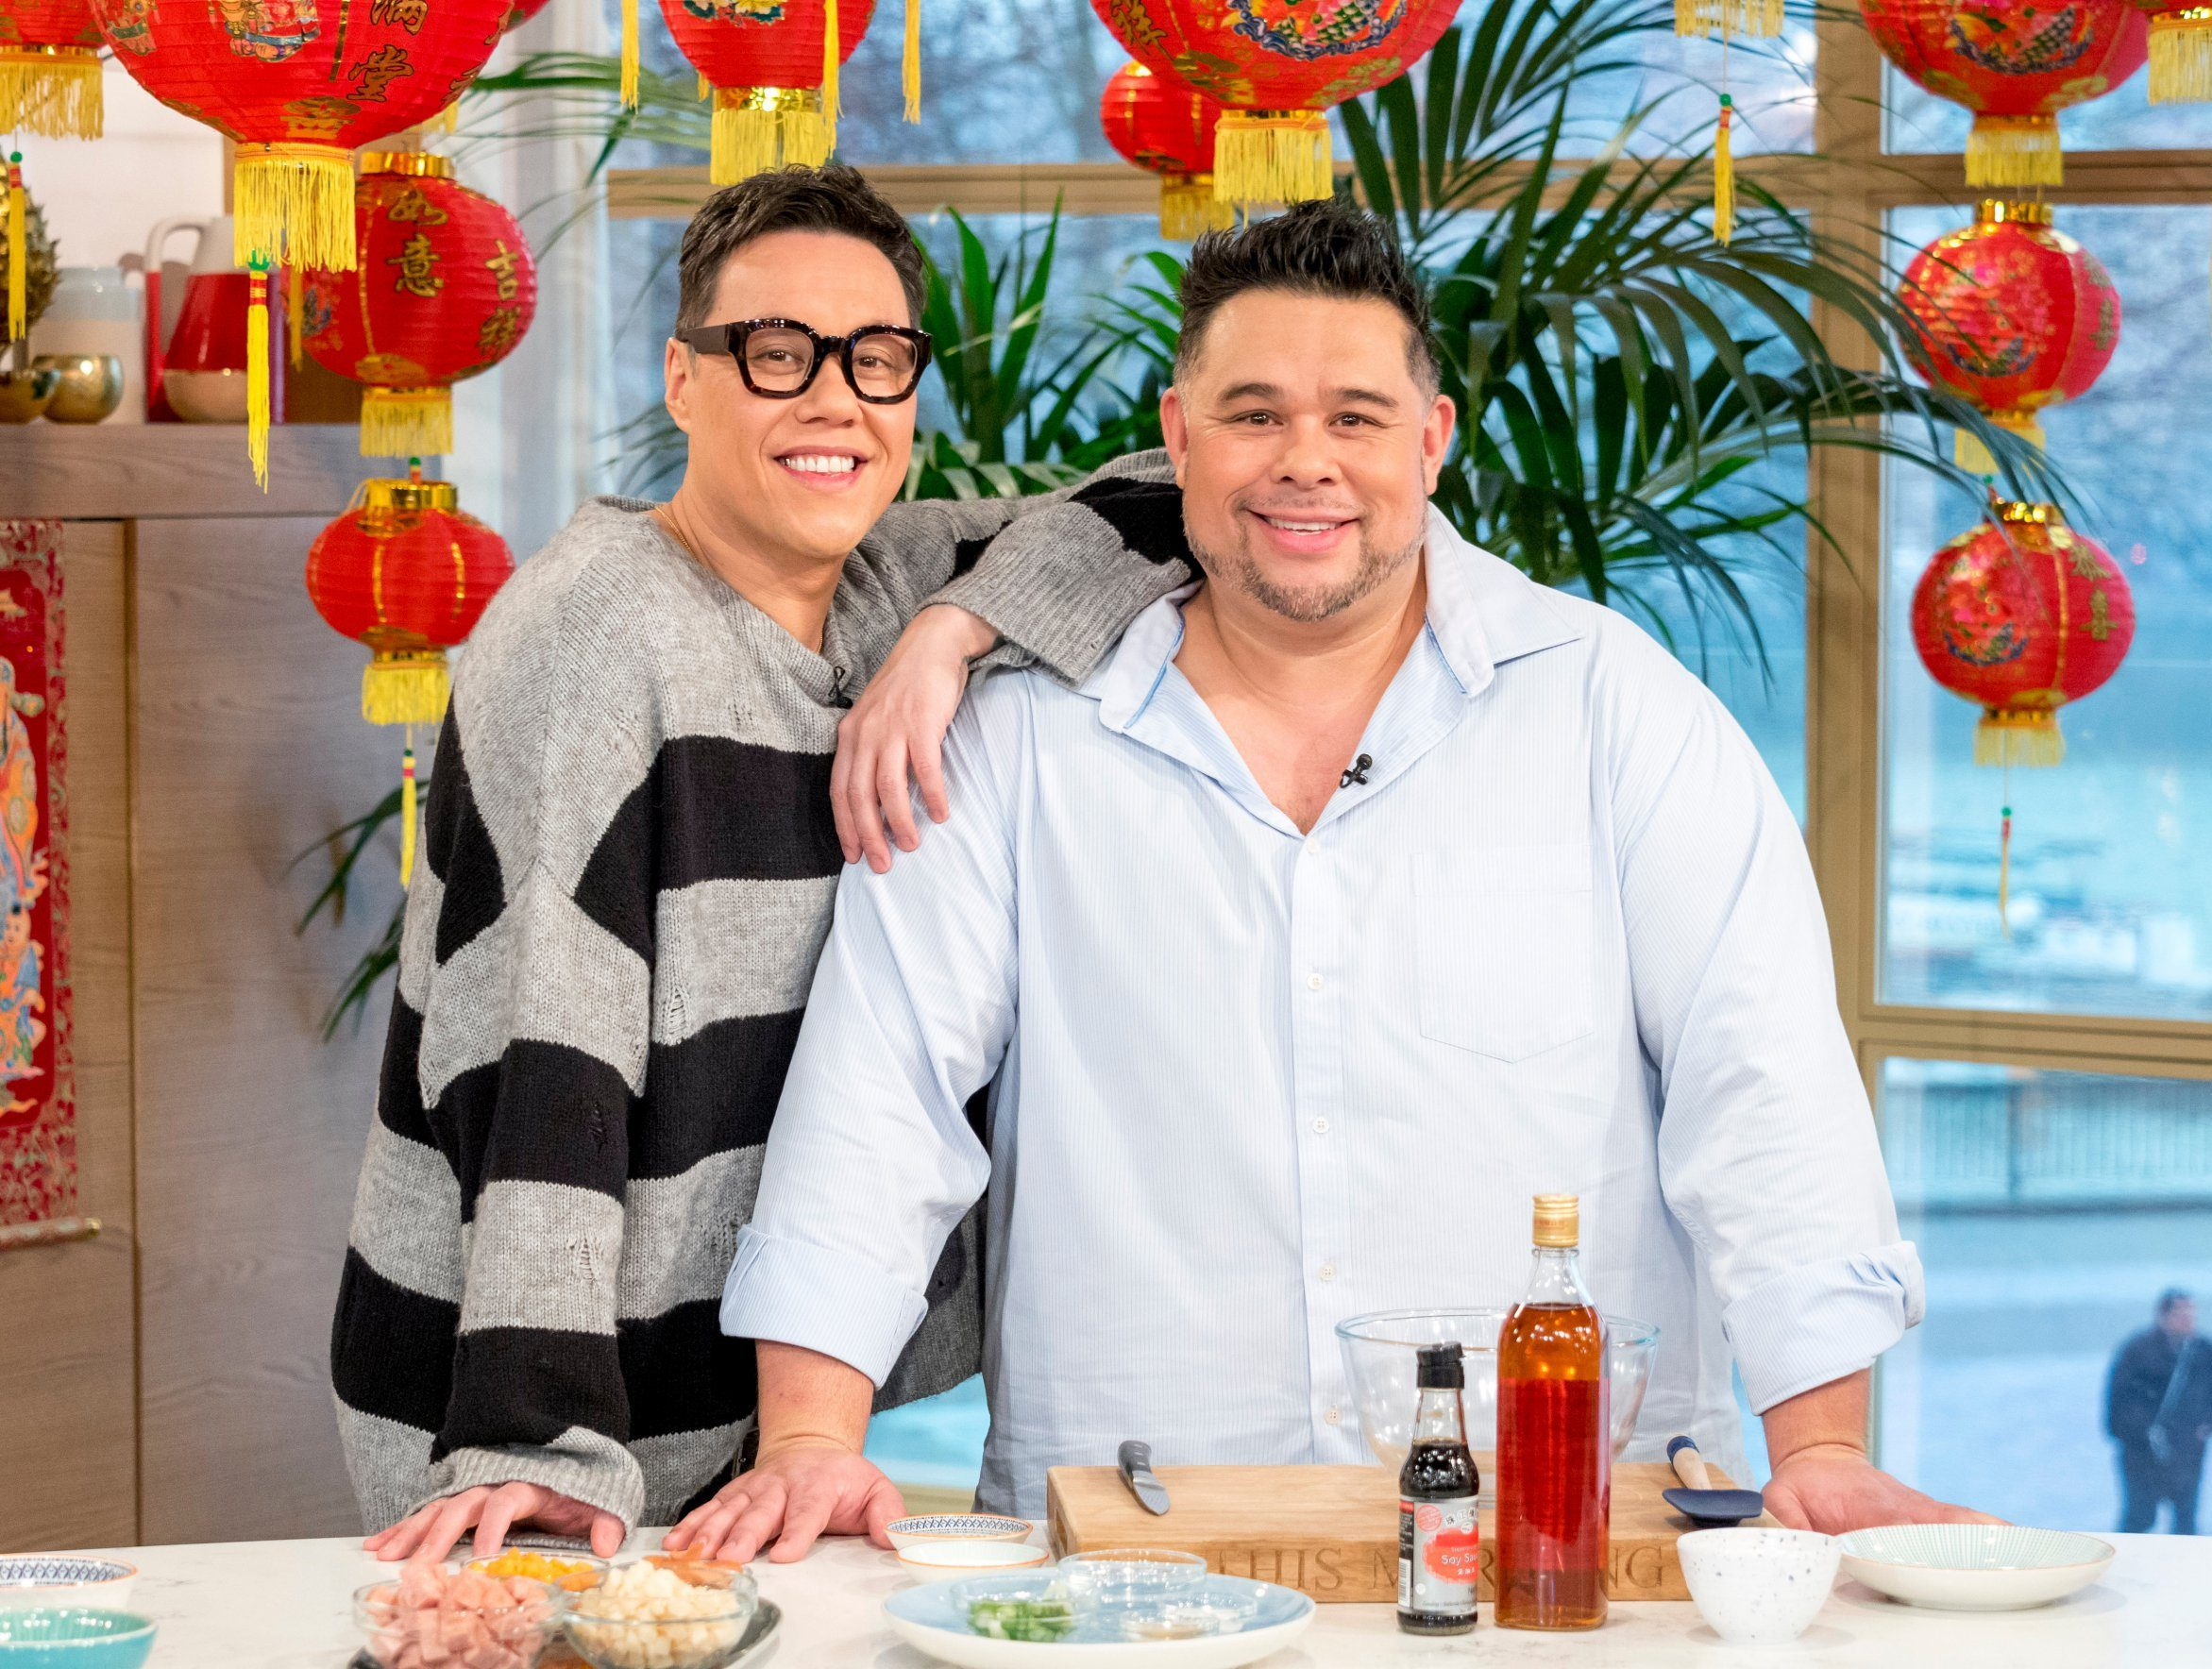 Gok Wan's brother Kwoklyn Wan age, job and is he older or younger than the fashion guru?